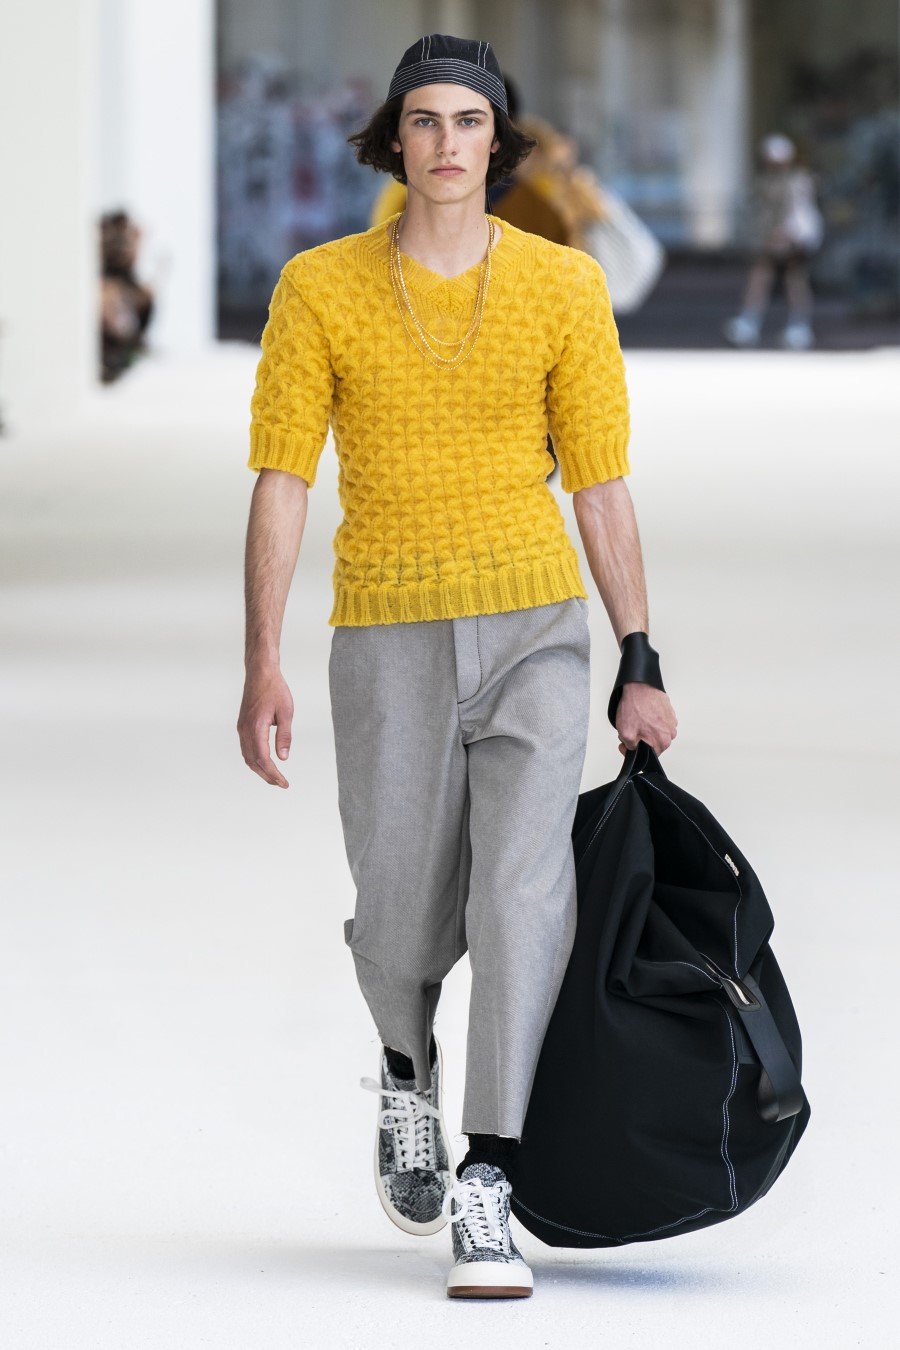 Sunnei - Printemps-Été 2020 - Milan Fashion Week